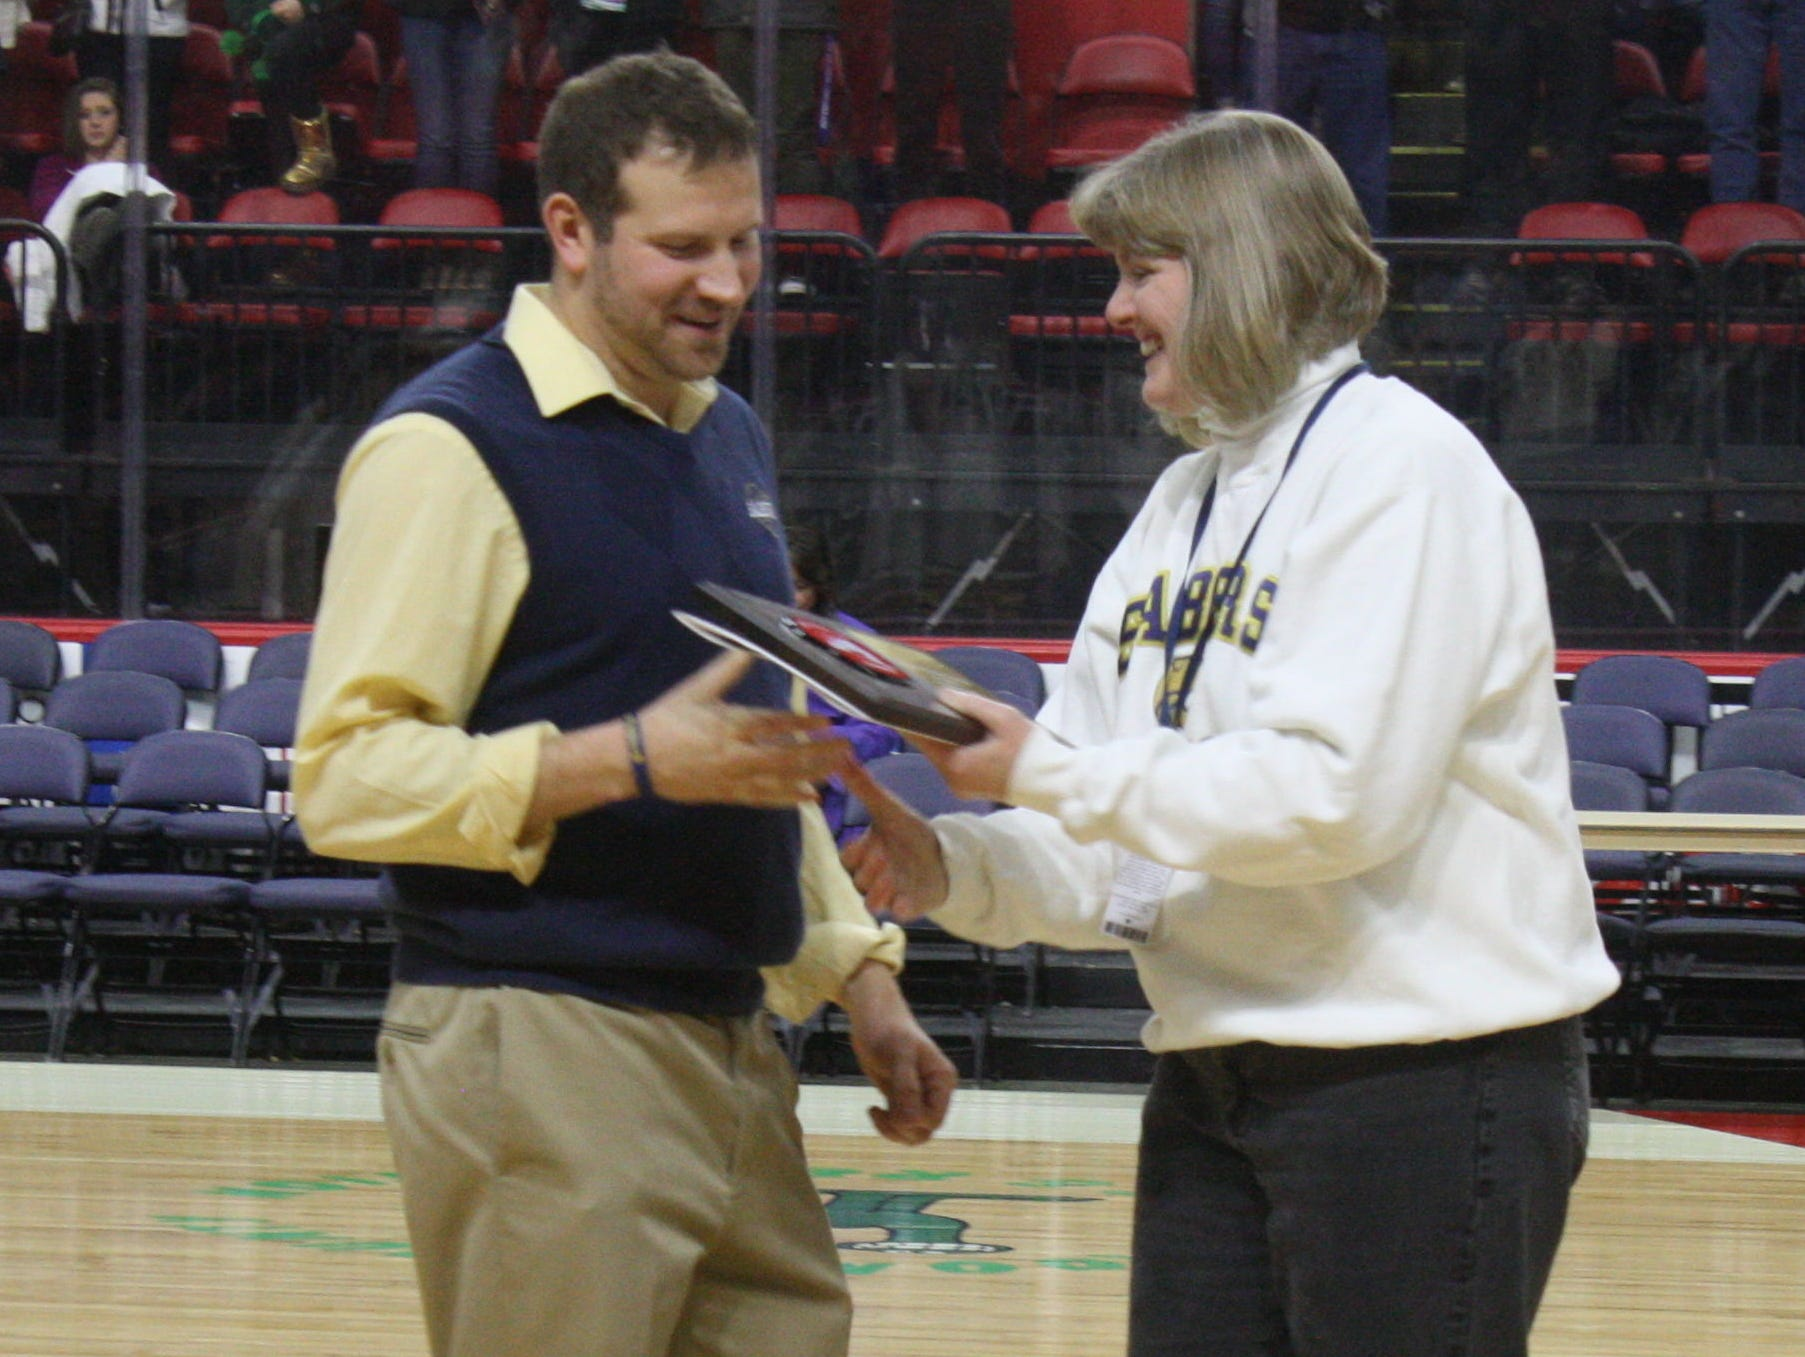 Susquehanna Valley girls basketball coach Chad Freije accepts the Section 4 Class B championship plaque from Athletic Director Denise Wickham following the Sabers' 55-49 victory on March 7.